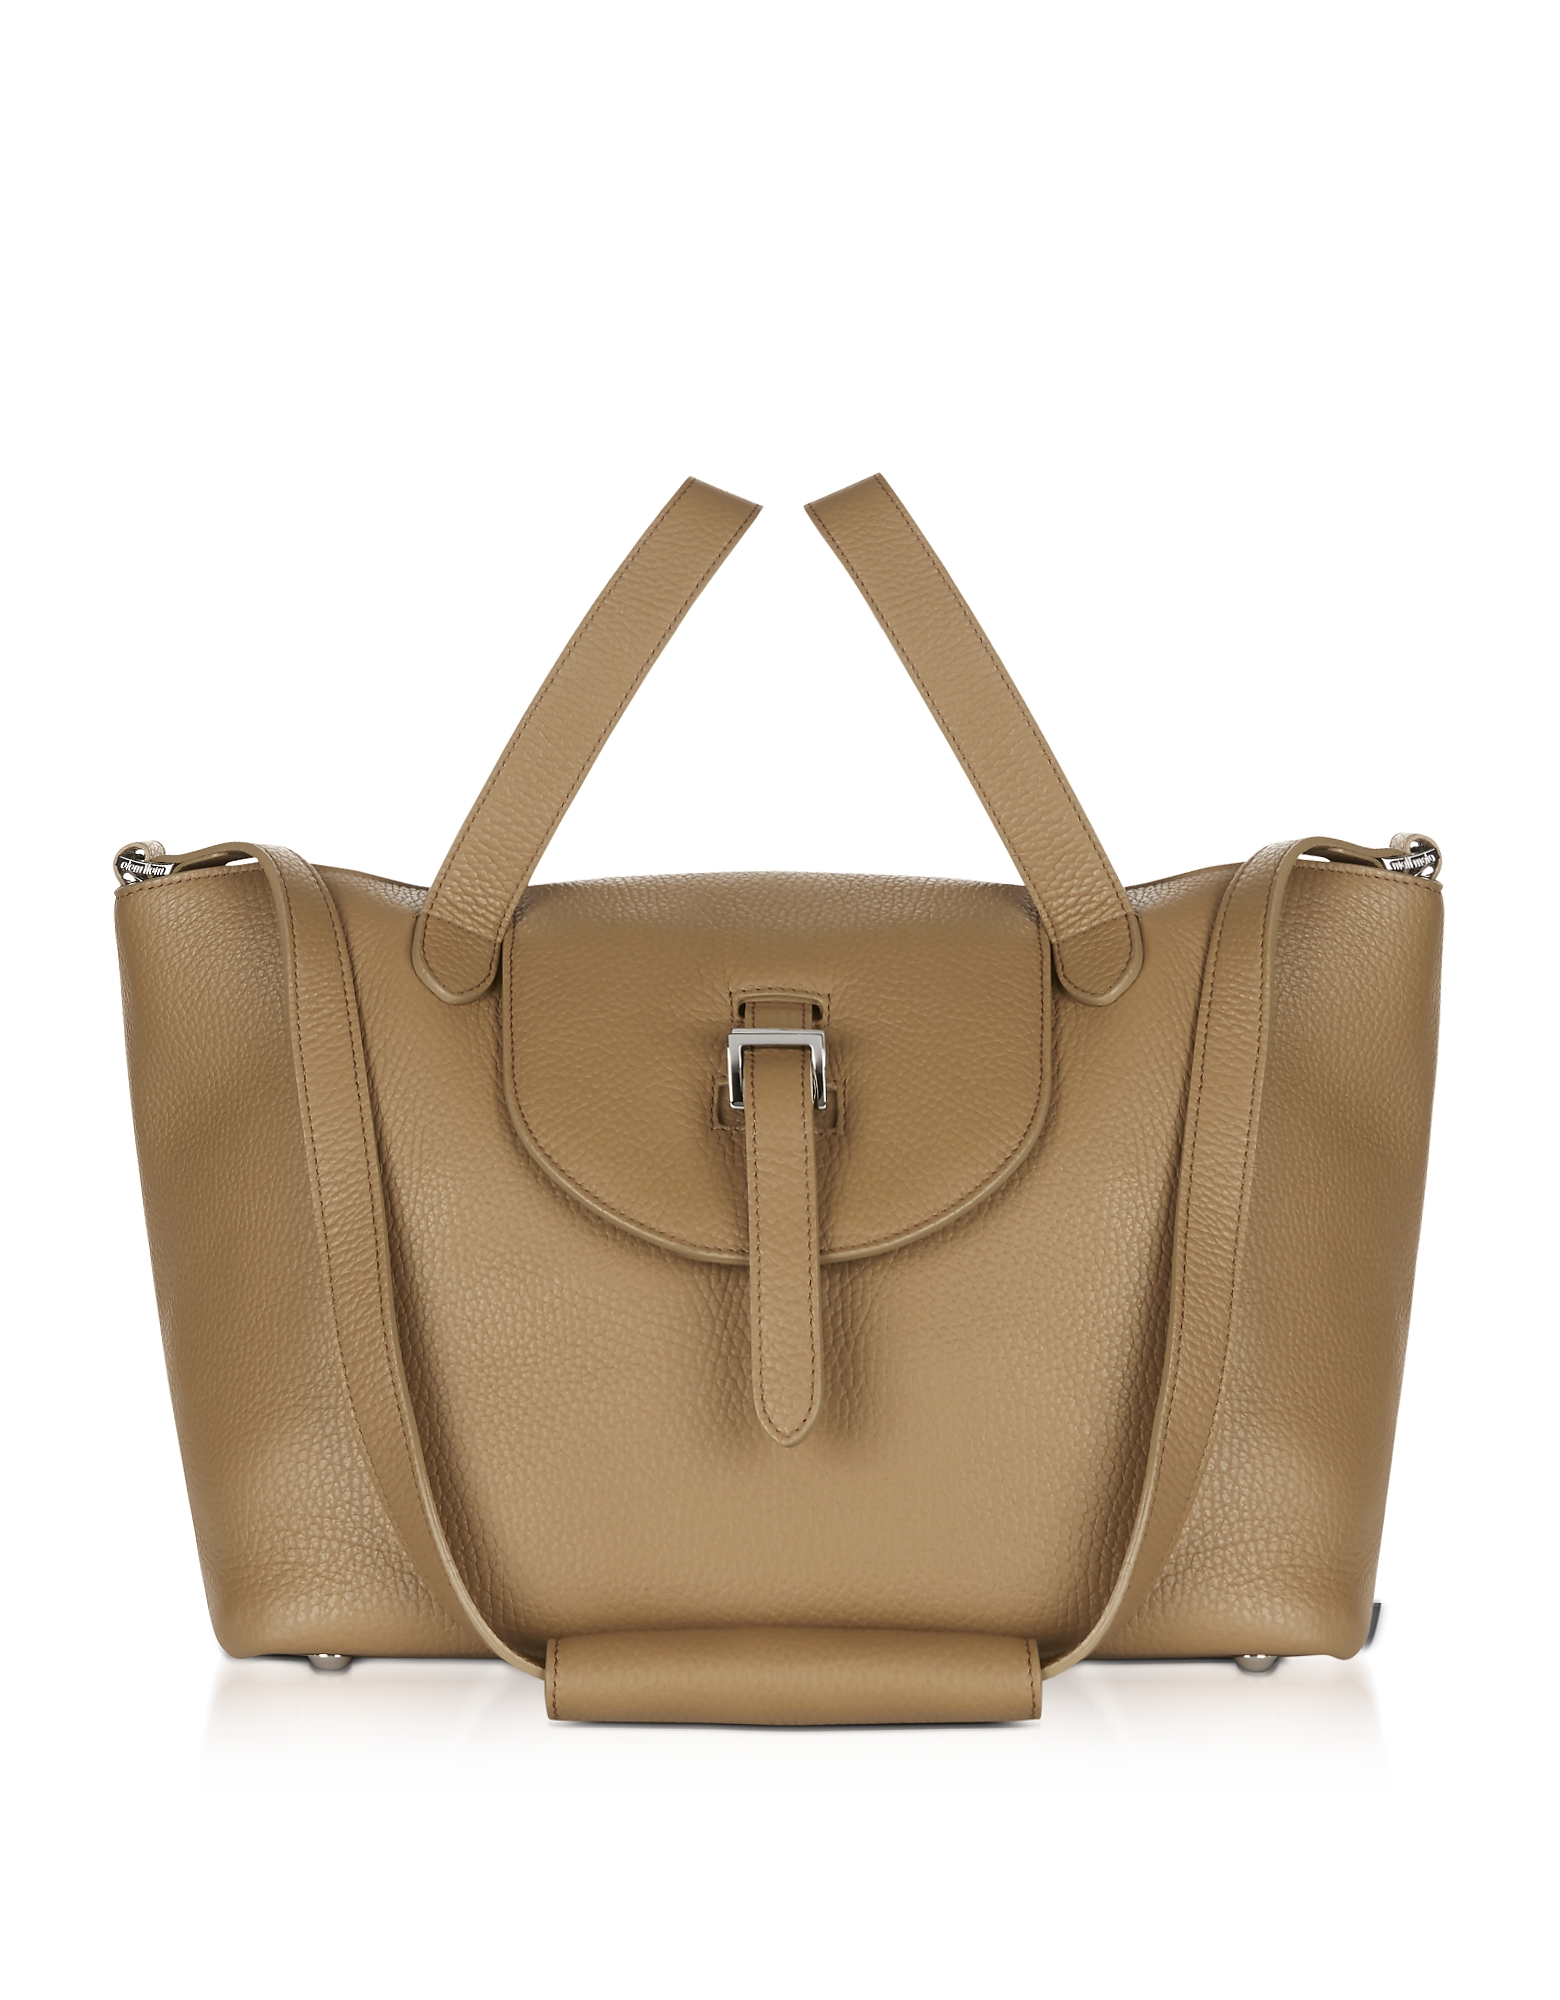 Meli Melo Handbags, Light Tan Leather Thela Medium Tote Bag